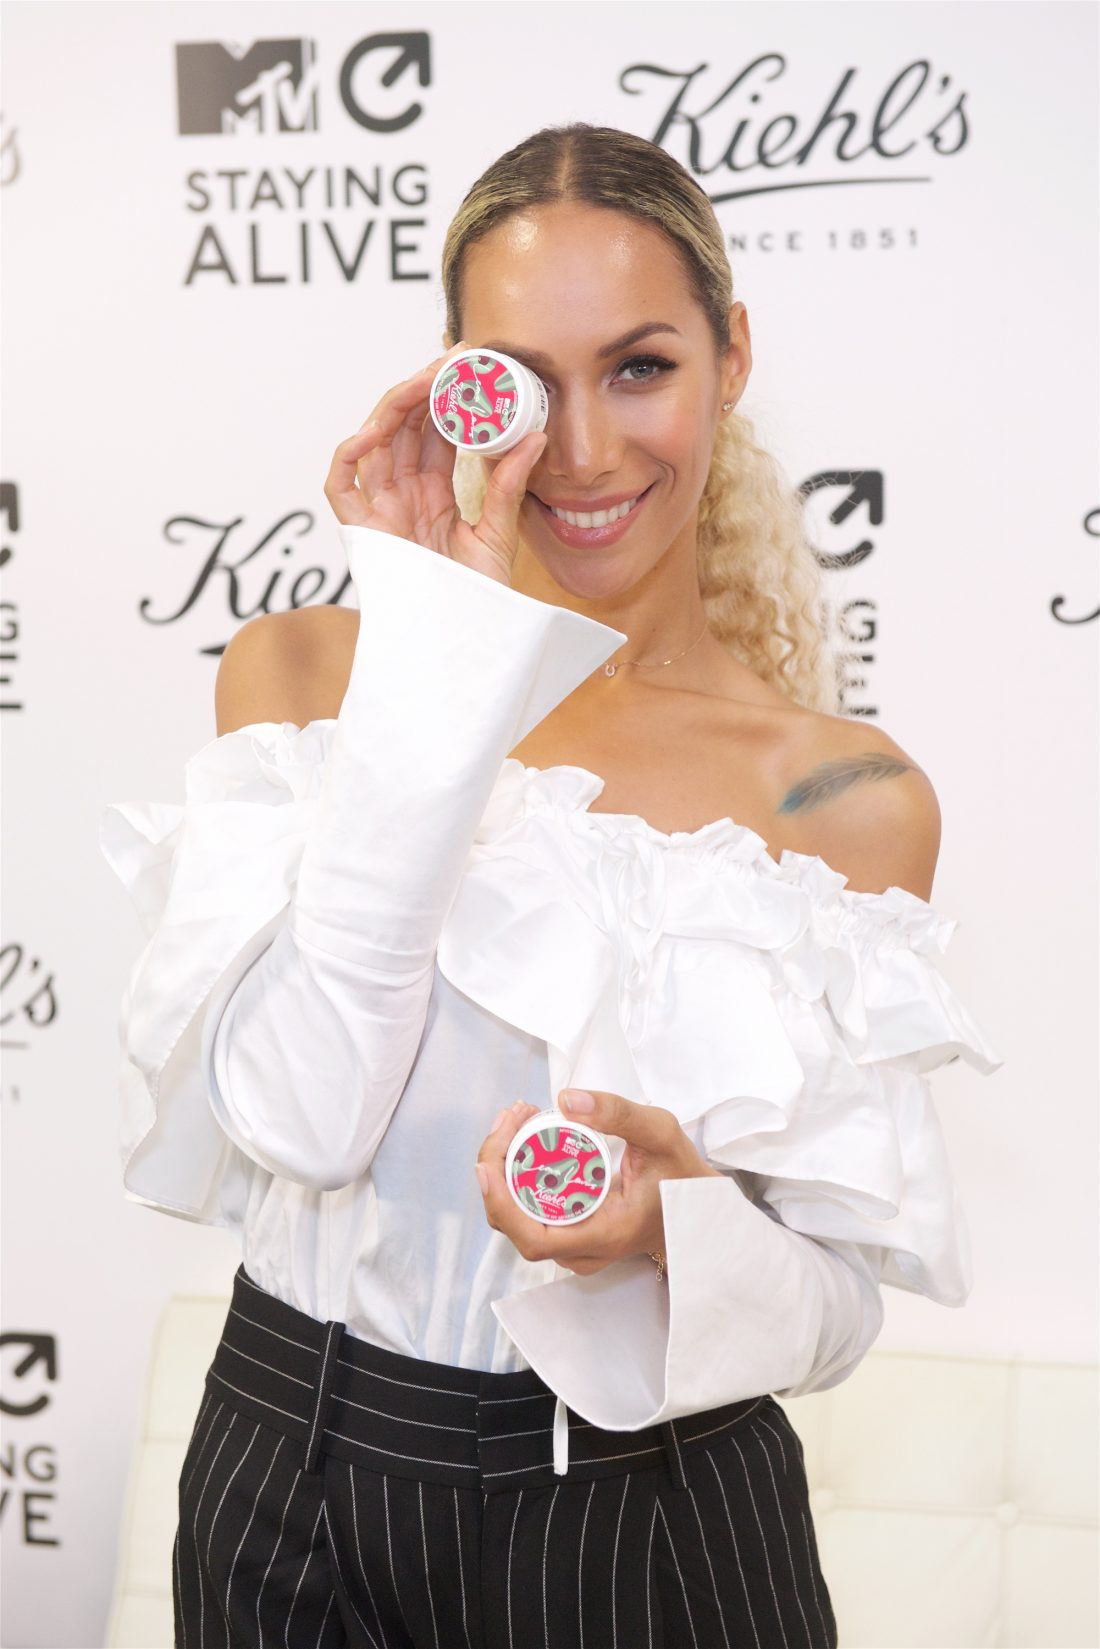 Leona Lewis joins MTV Staying Alive and Kiehl's in the fight against HIV/AIDS